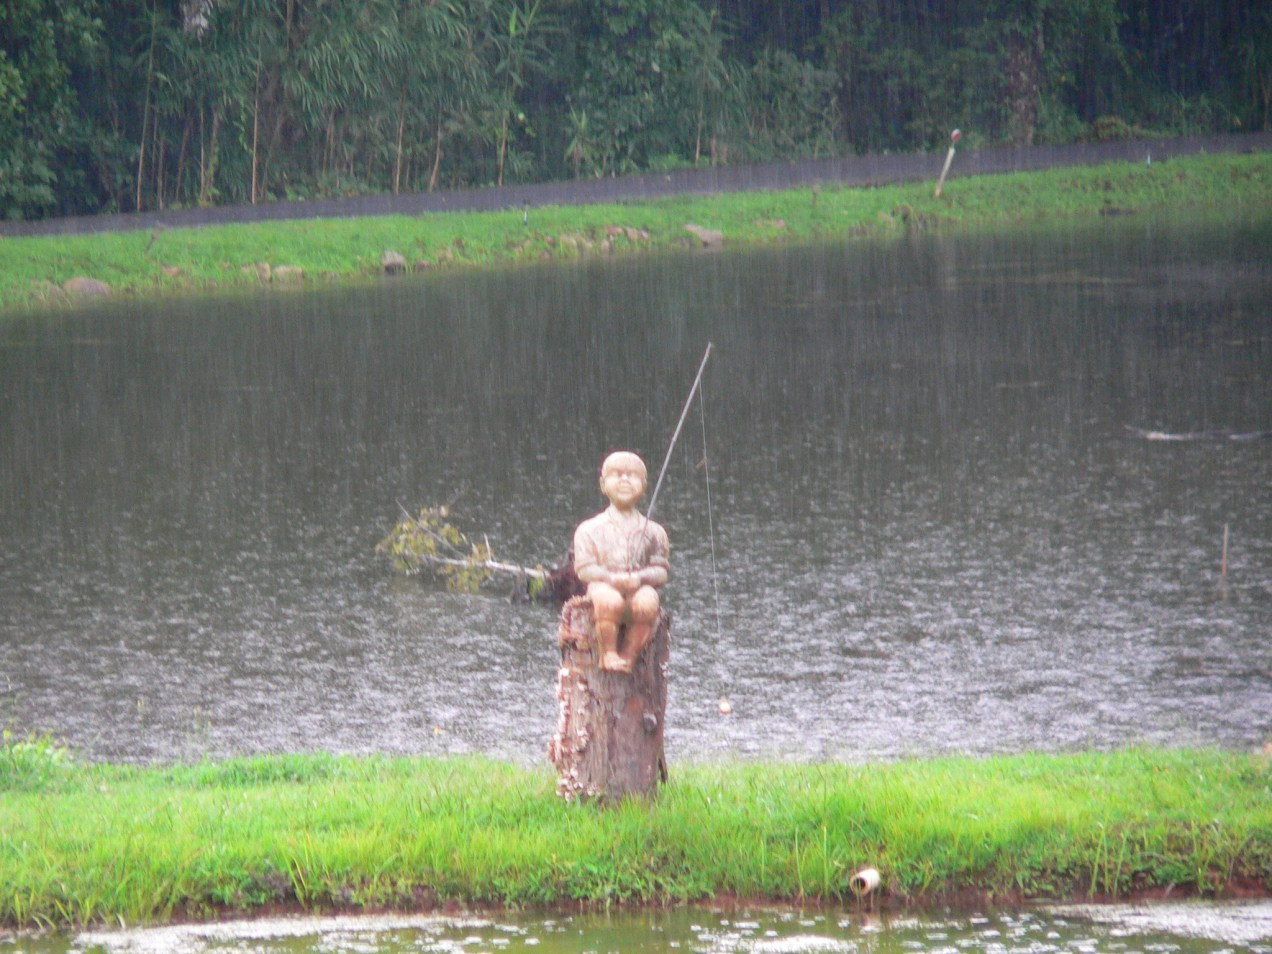 This little boy likes to fish rain or shine, all the time.